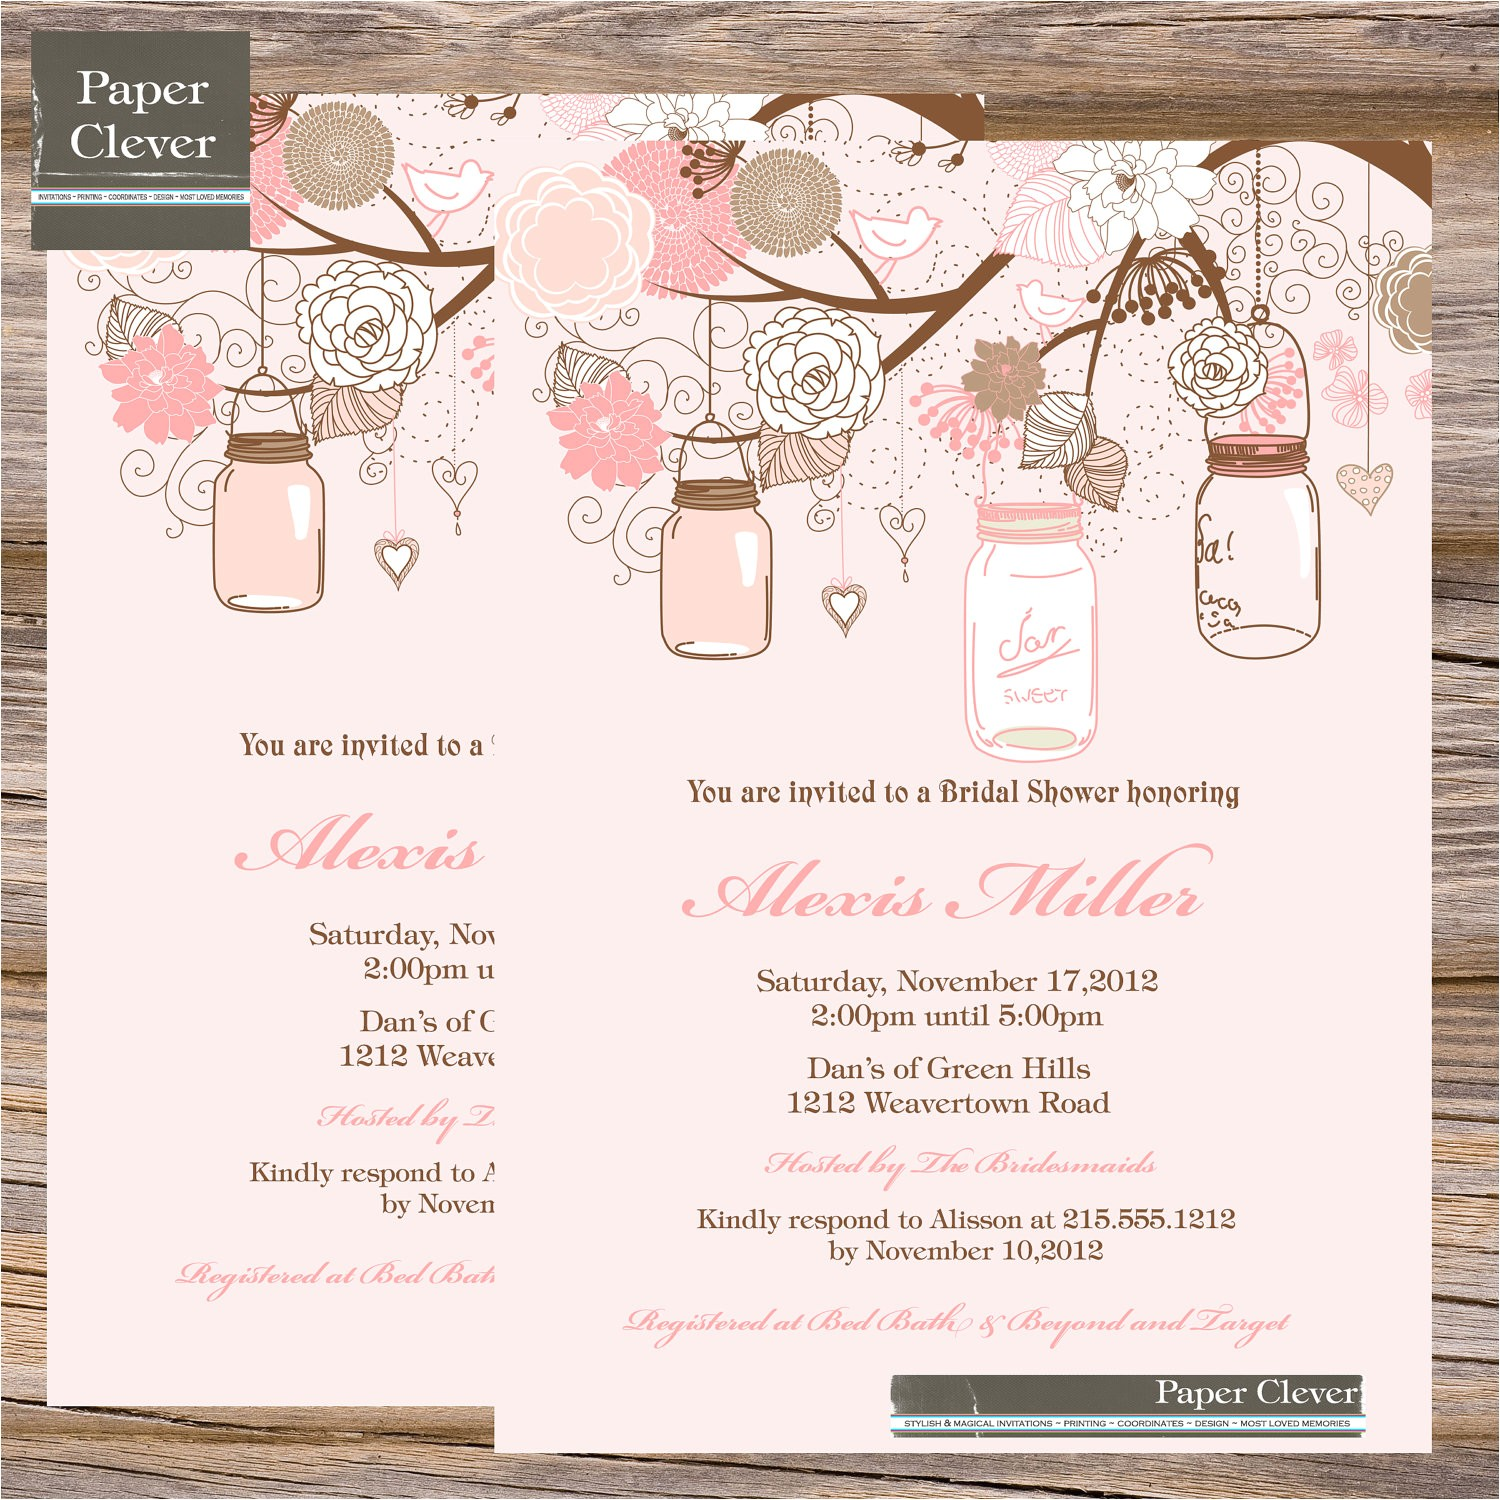 Etsy Wedding Invitation Templates Etsy Wedding Invitation Template Etsy Vintage Wedding